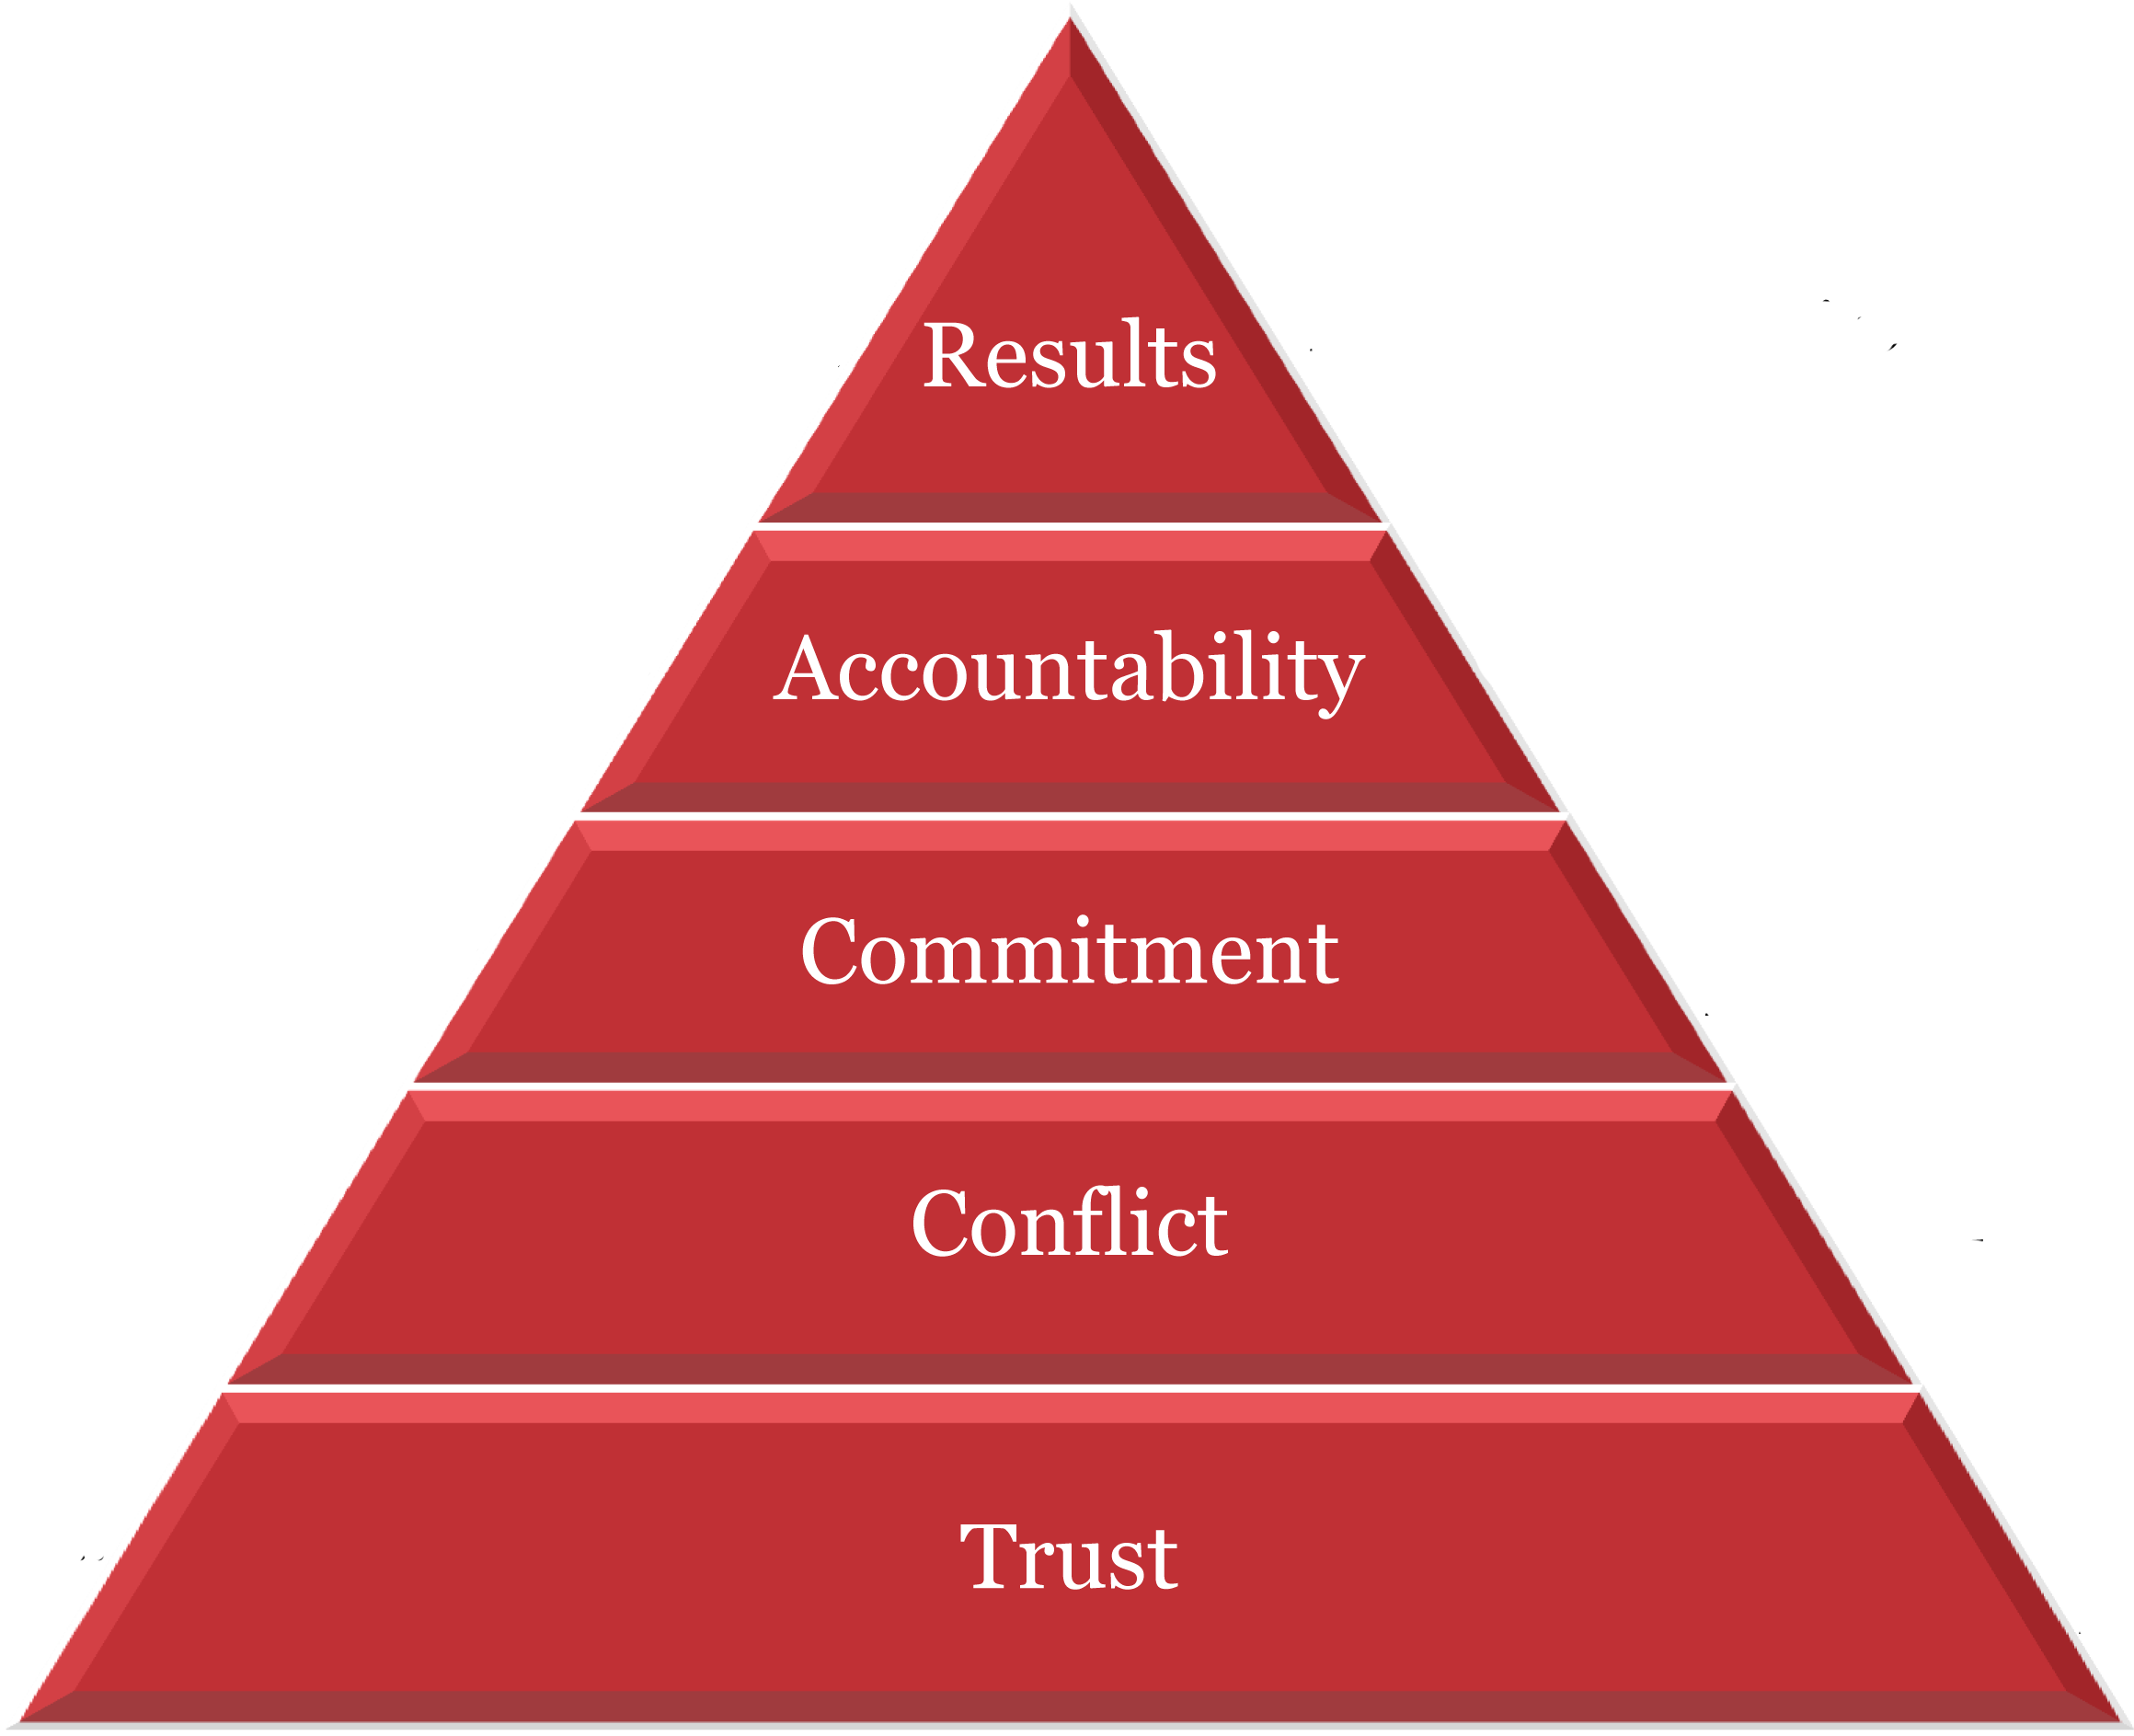 The Five Behaviors Pyramid